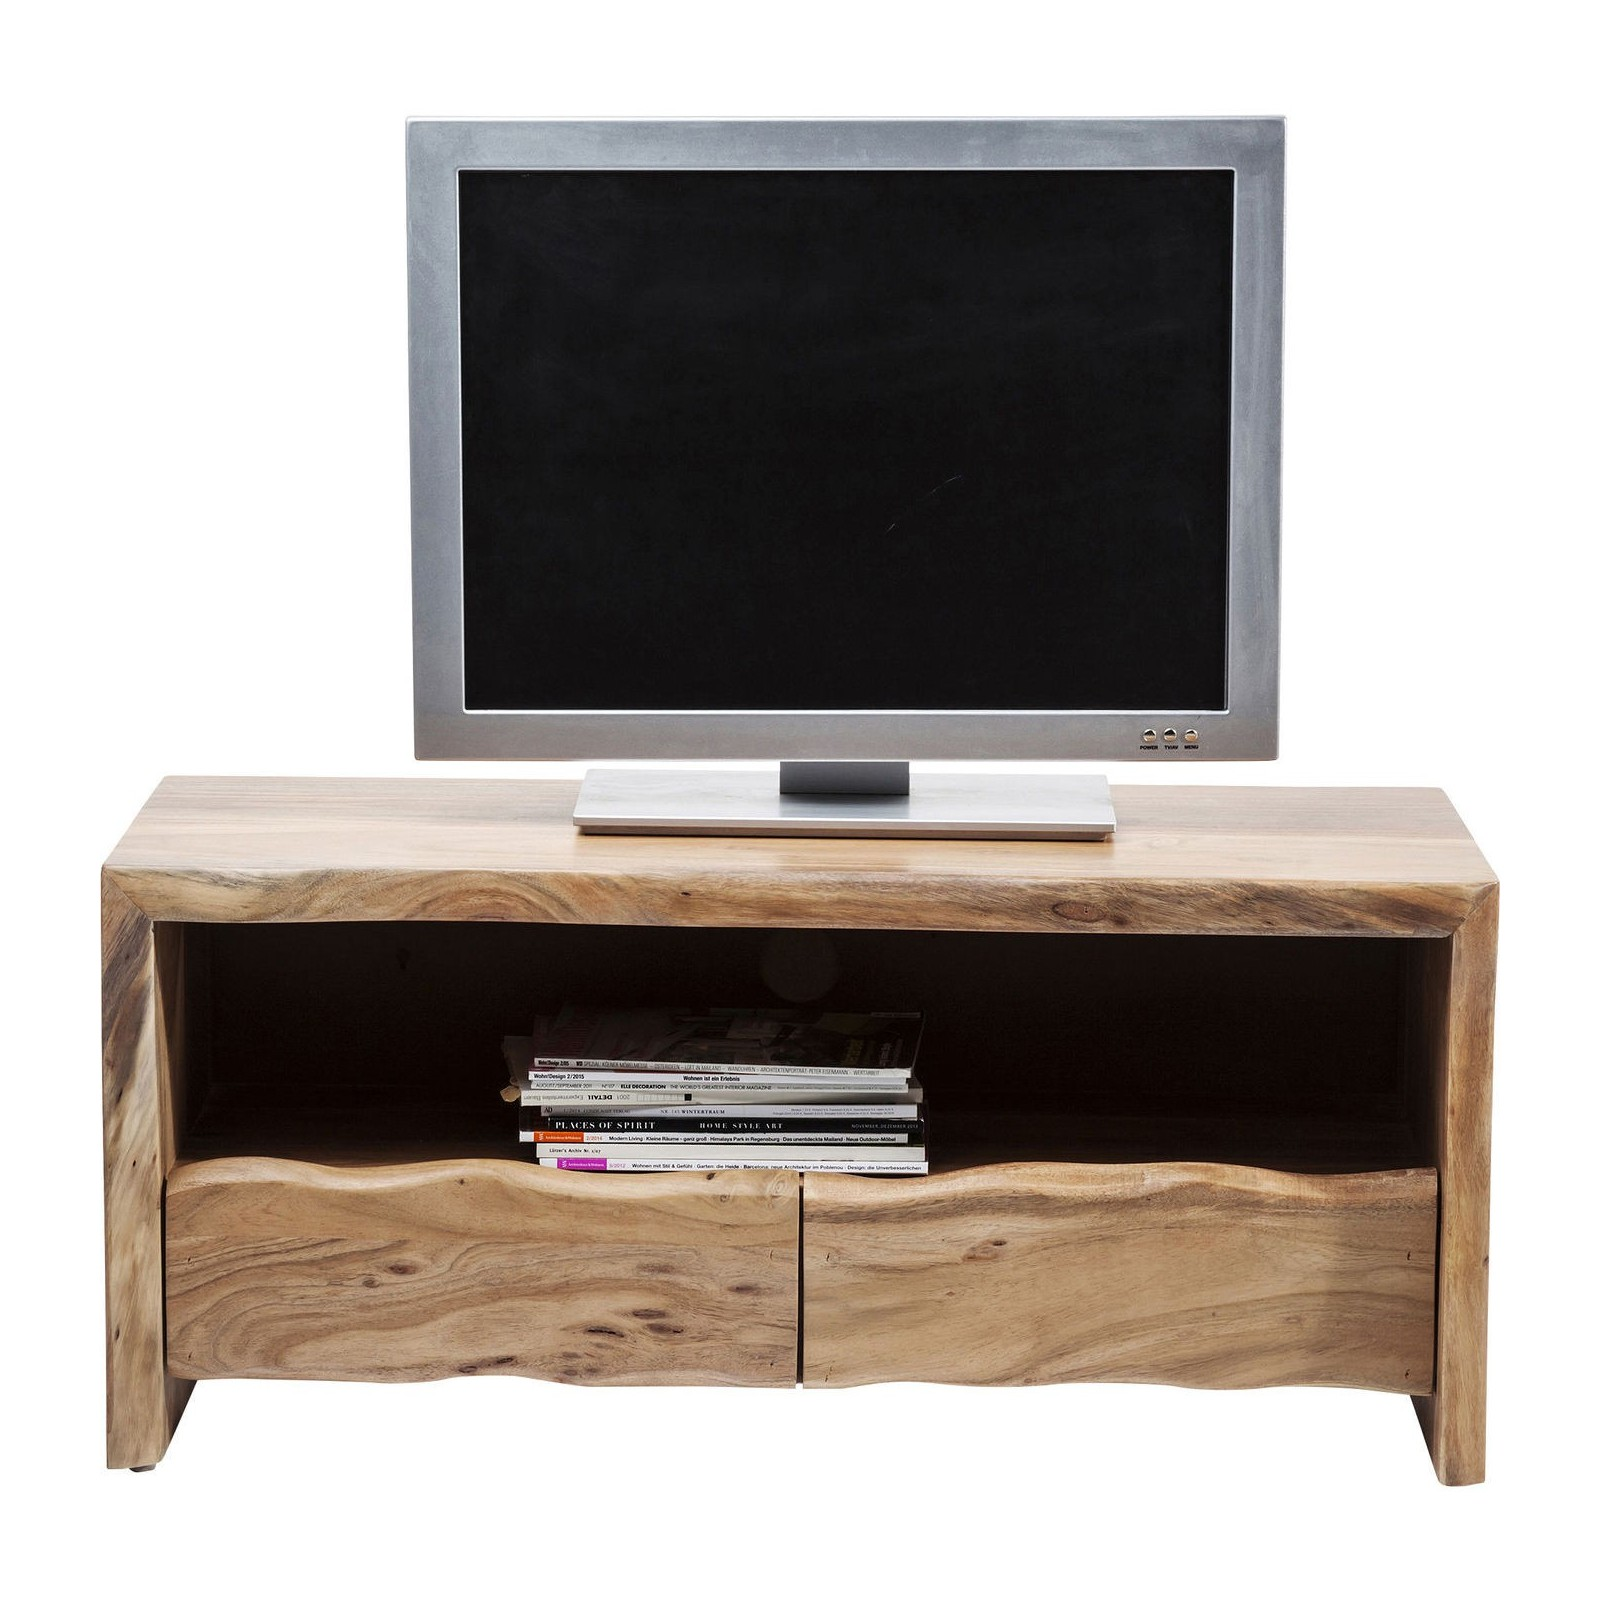 Meuble tv scandinave en bois pure nature kare design for Meuble tv longueur 100